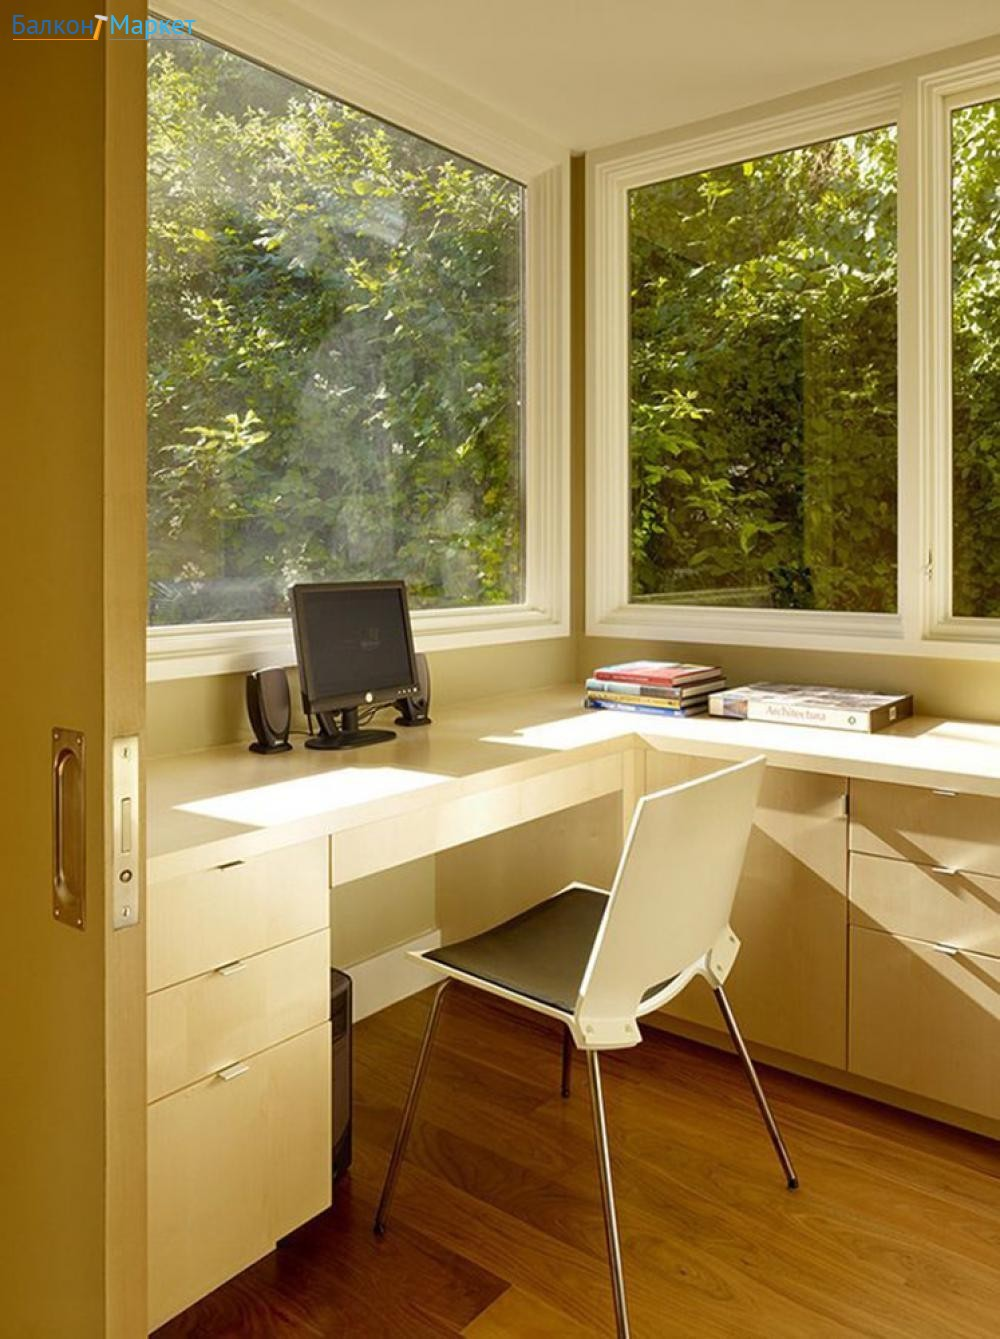 Excellent diy home office decor 7 pictures styles just anoth.